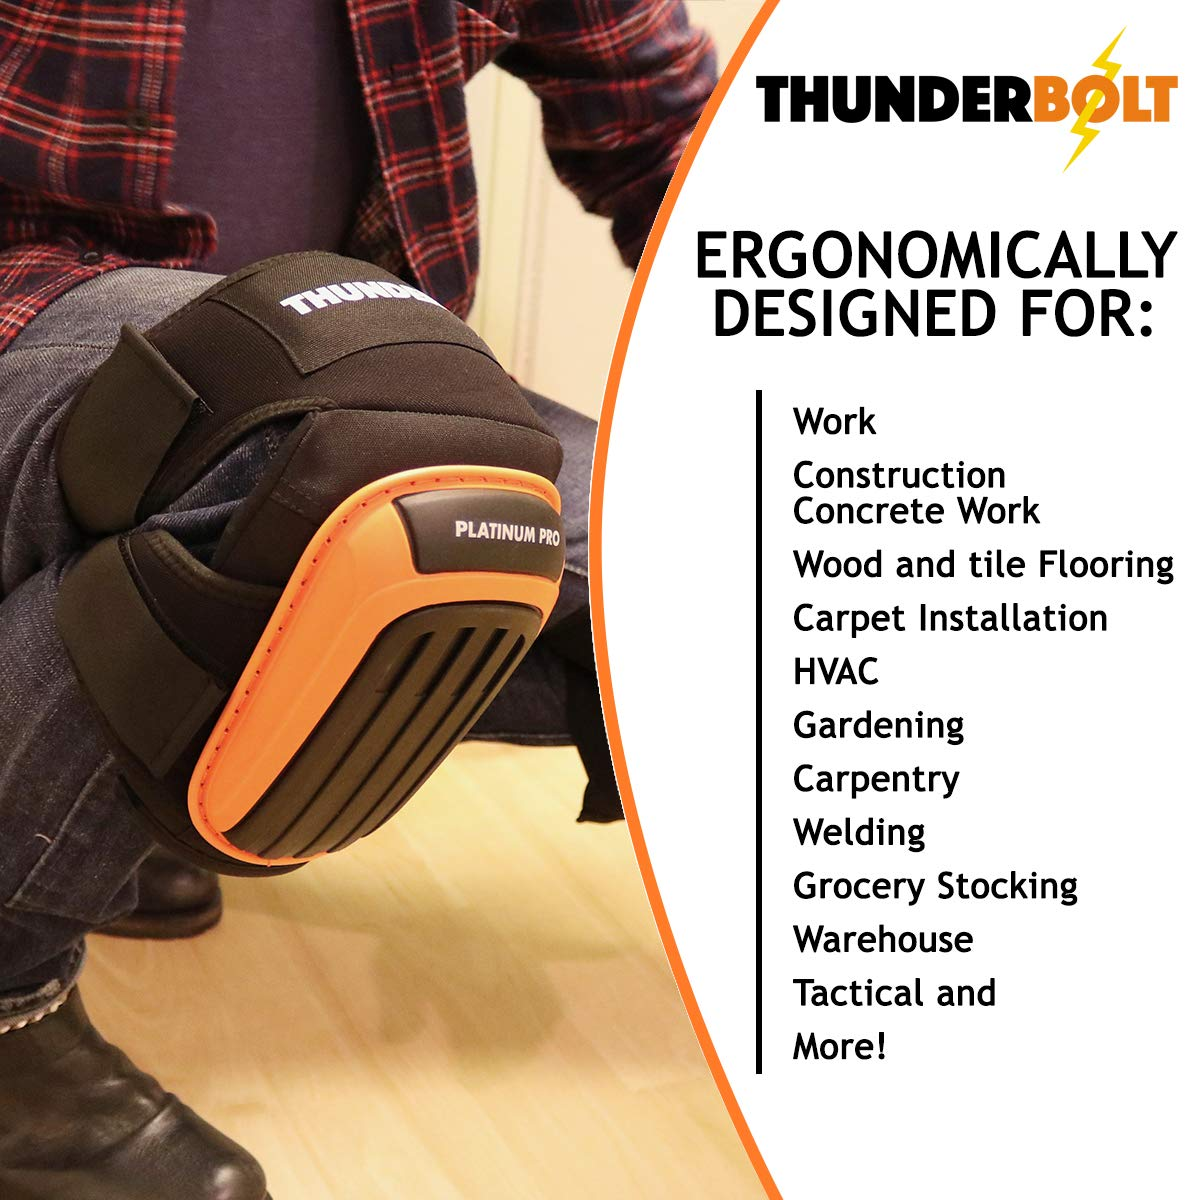 Knee Pads for Work by Thunderbolt with Heavy Duty Foam Cushioning and Gel Cushion Perfect for Construction, Flooring and Gardening with Adjustable Anti-Slip Straps by Thunderbolt (Image #6)